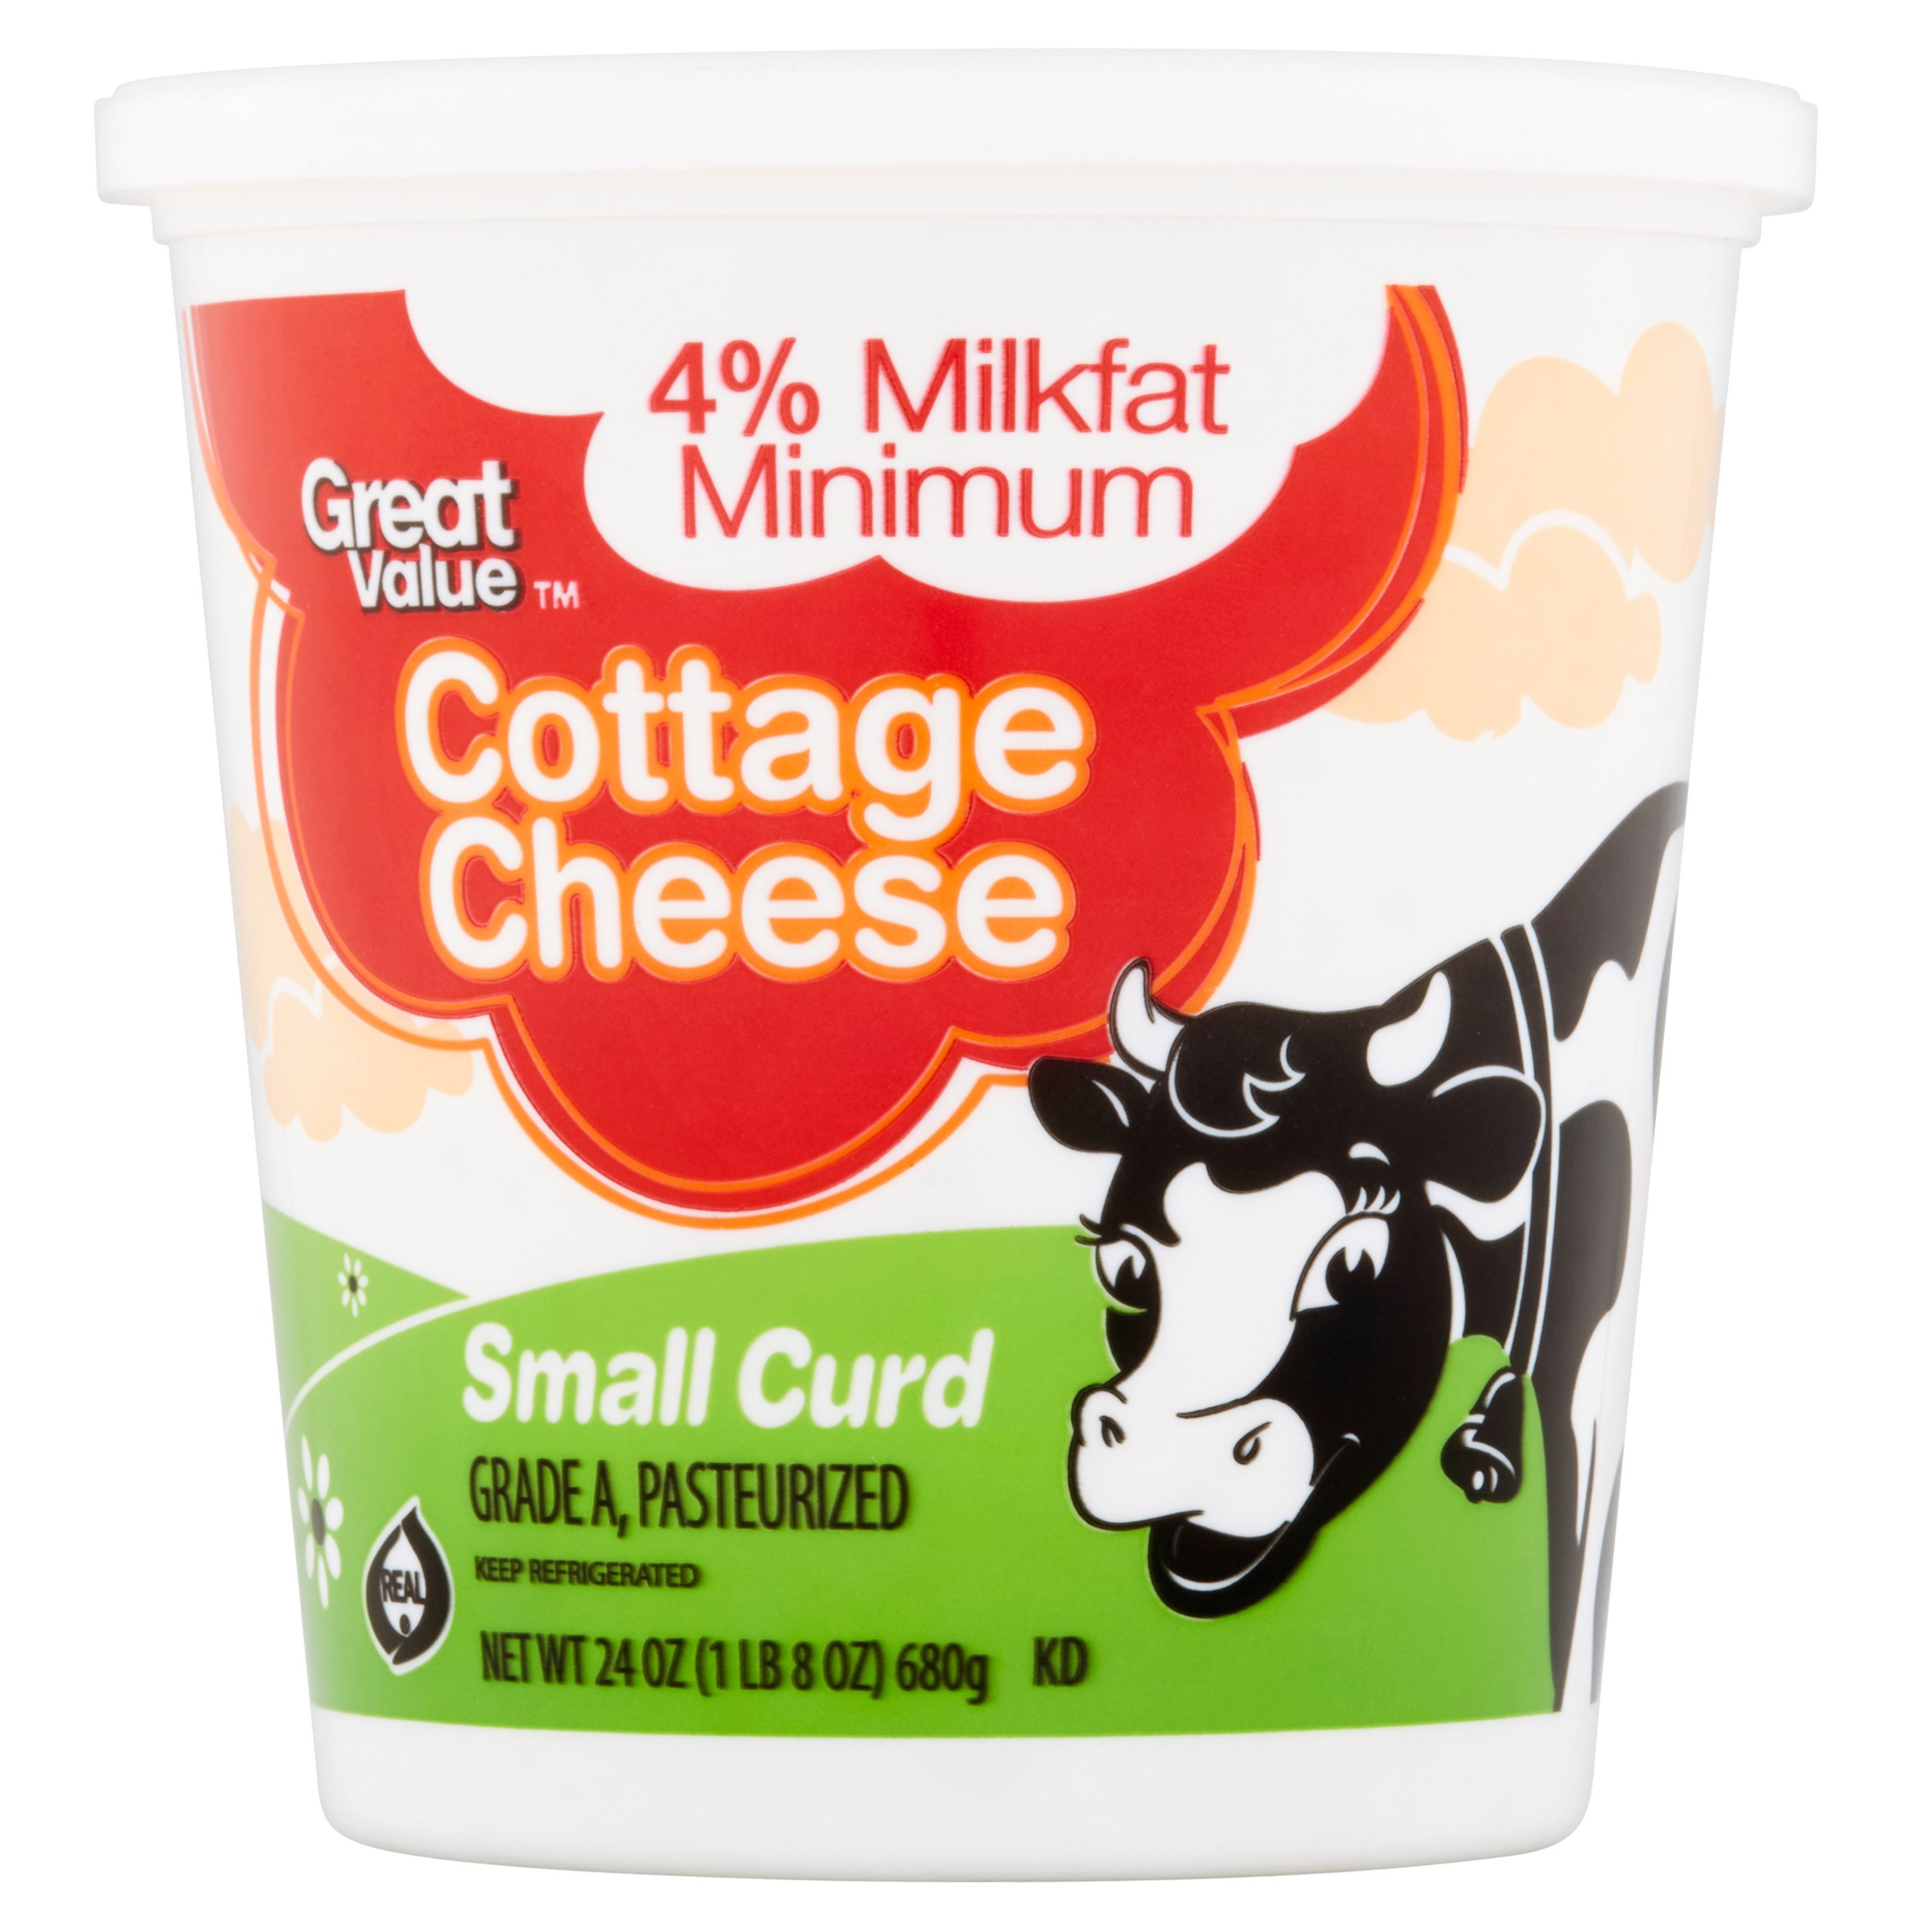 Great Value Small Curd Cottage Cheese, 24 oz by Wal-Mart Stores, Inc.